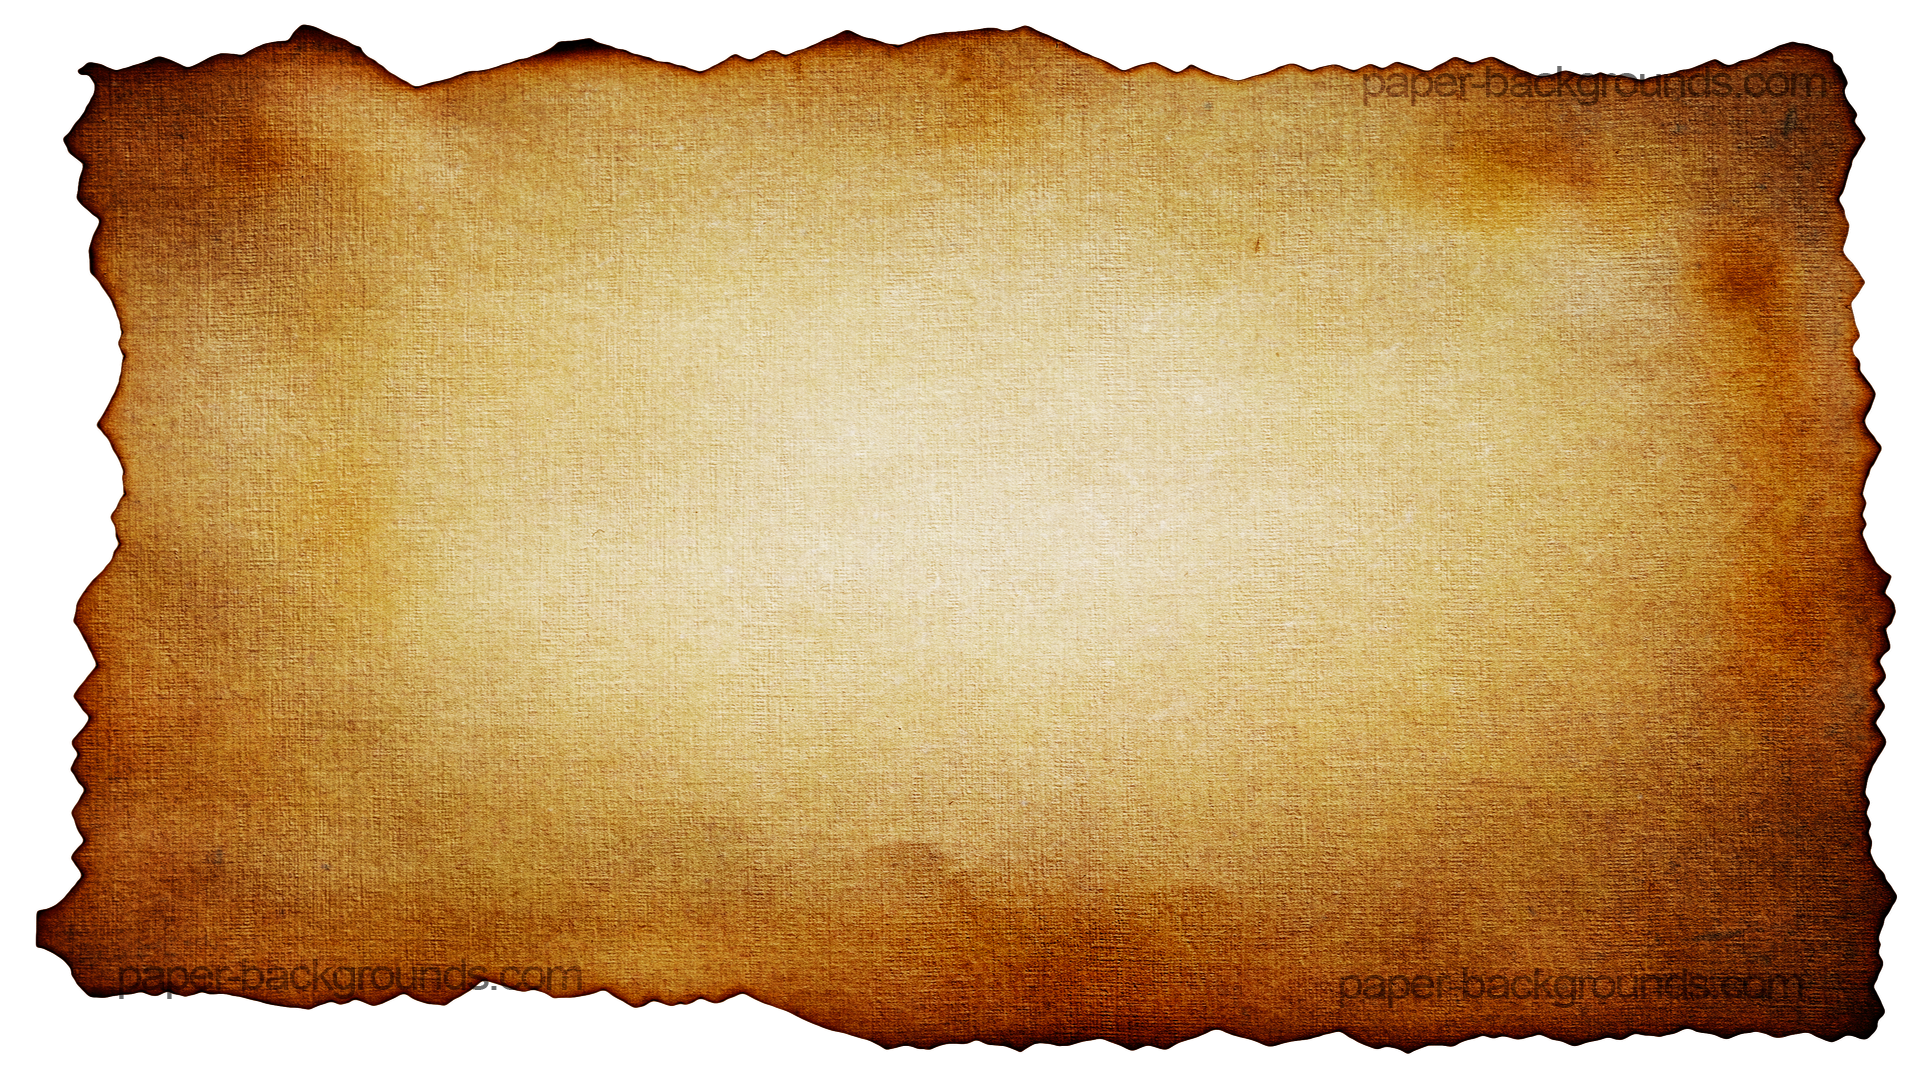 Old Paper Background Png image #13195